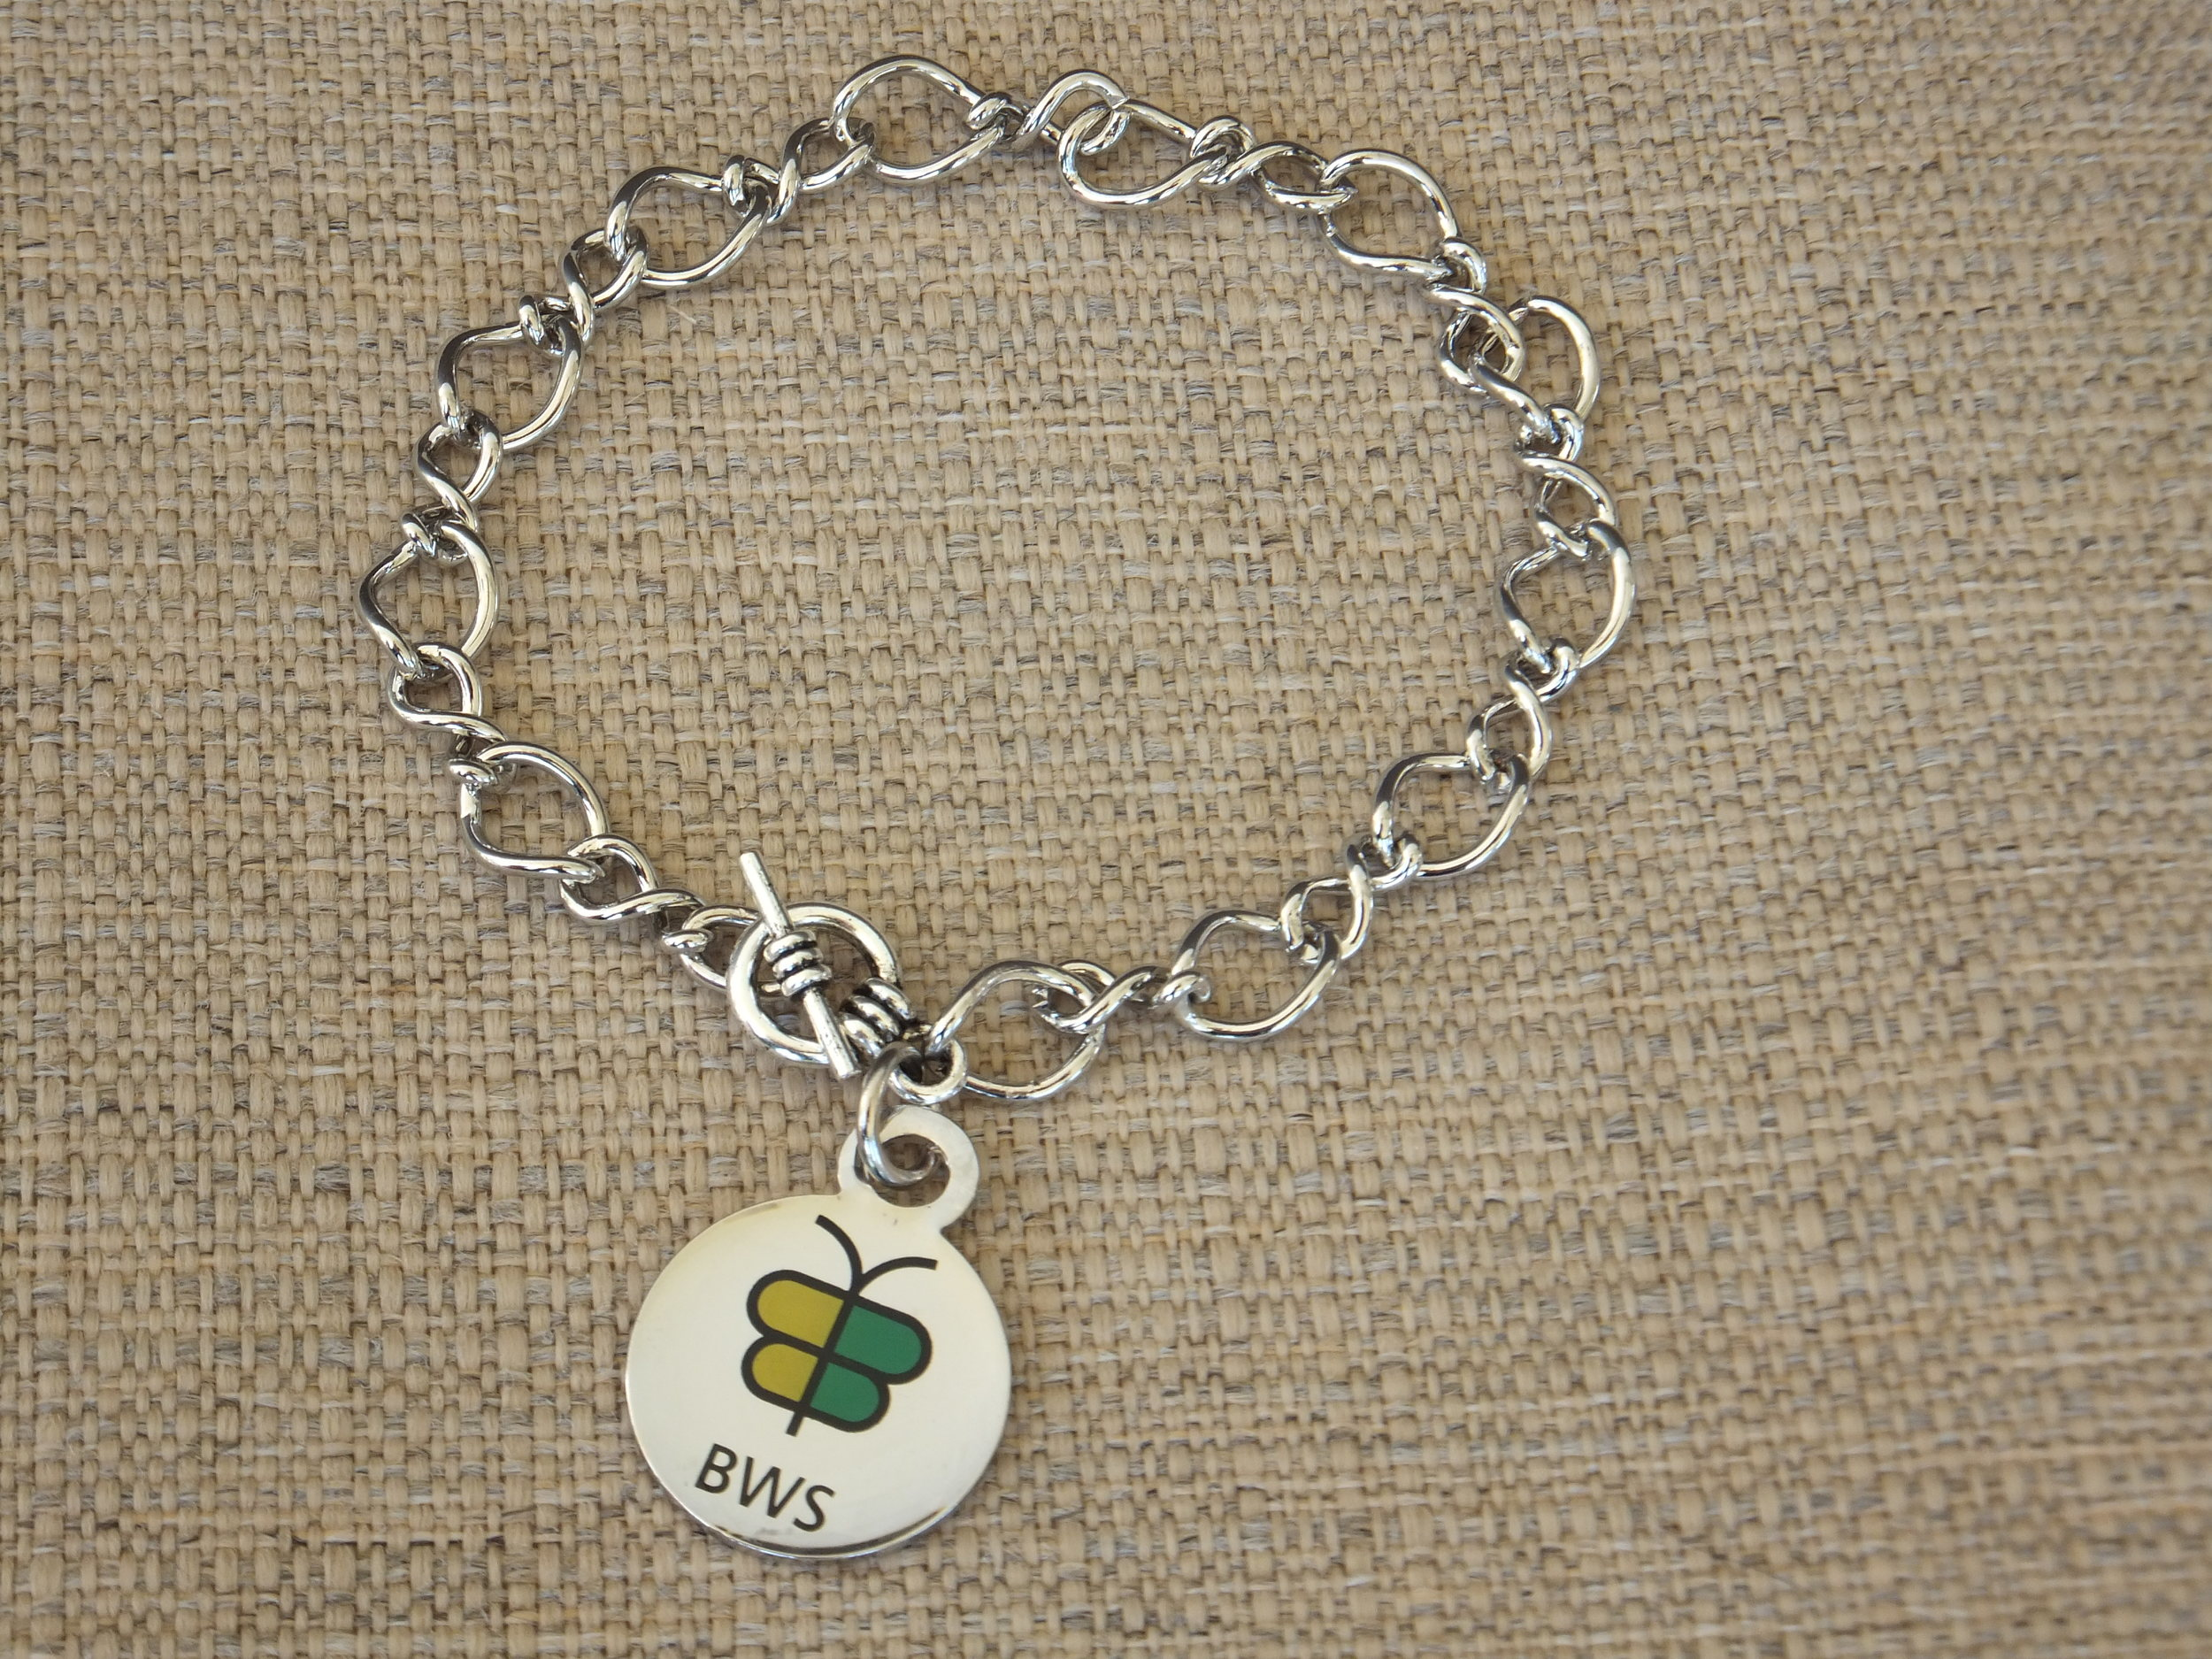 BWS Awareness charm Bracelet